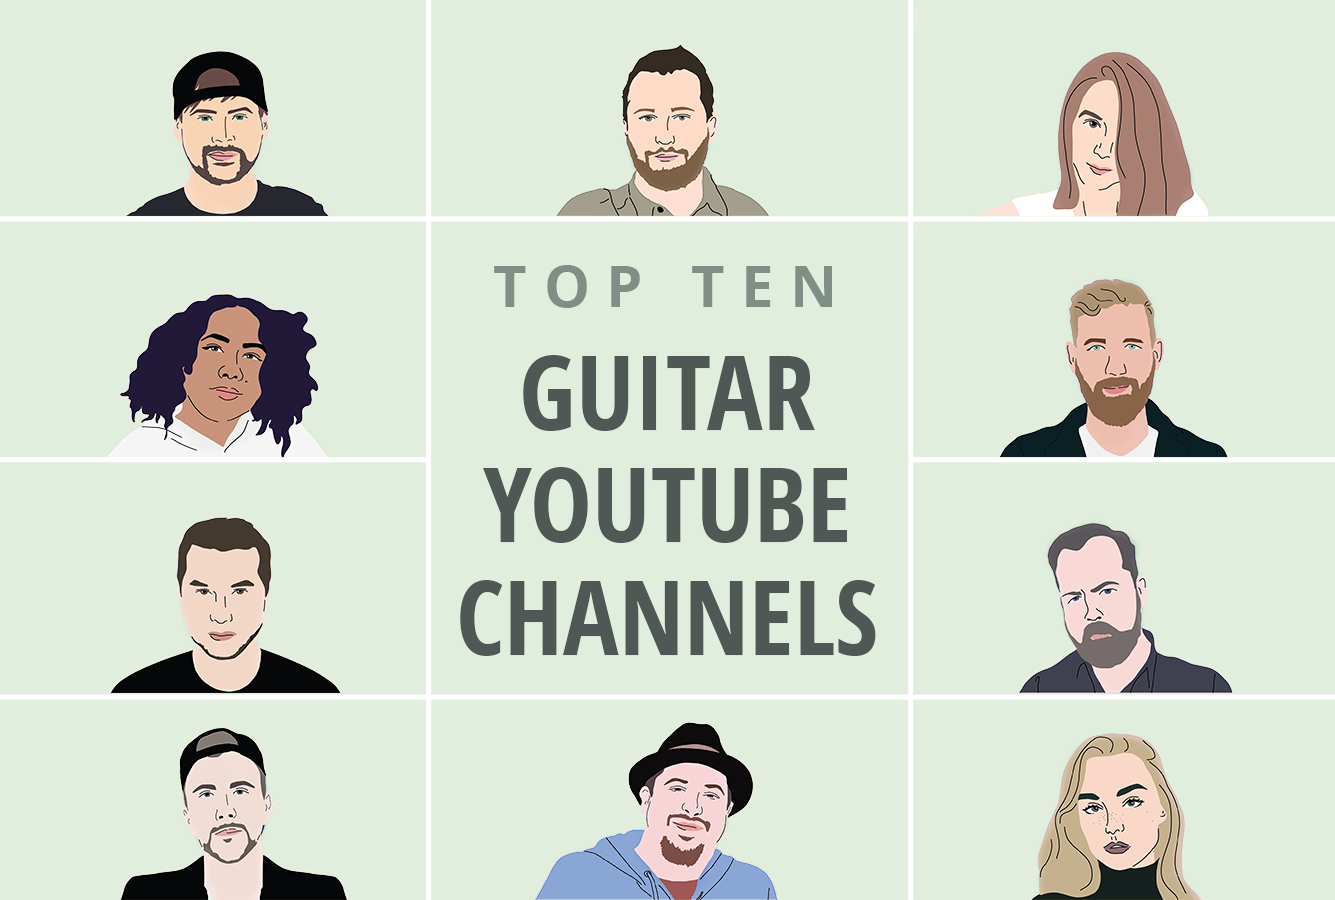 10 Guitar YouTube Channels to Watch